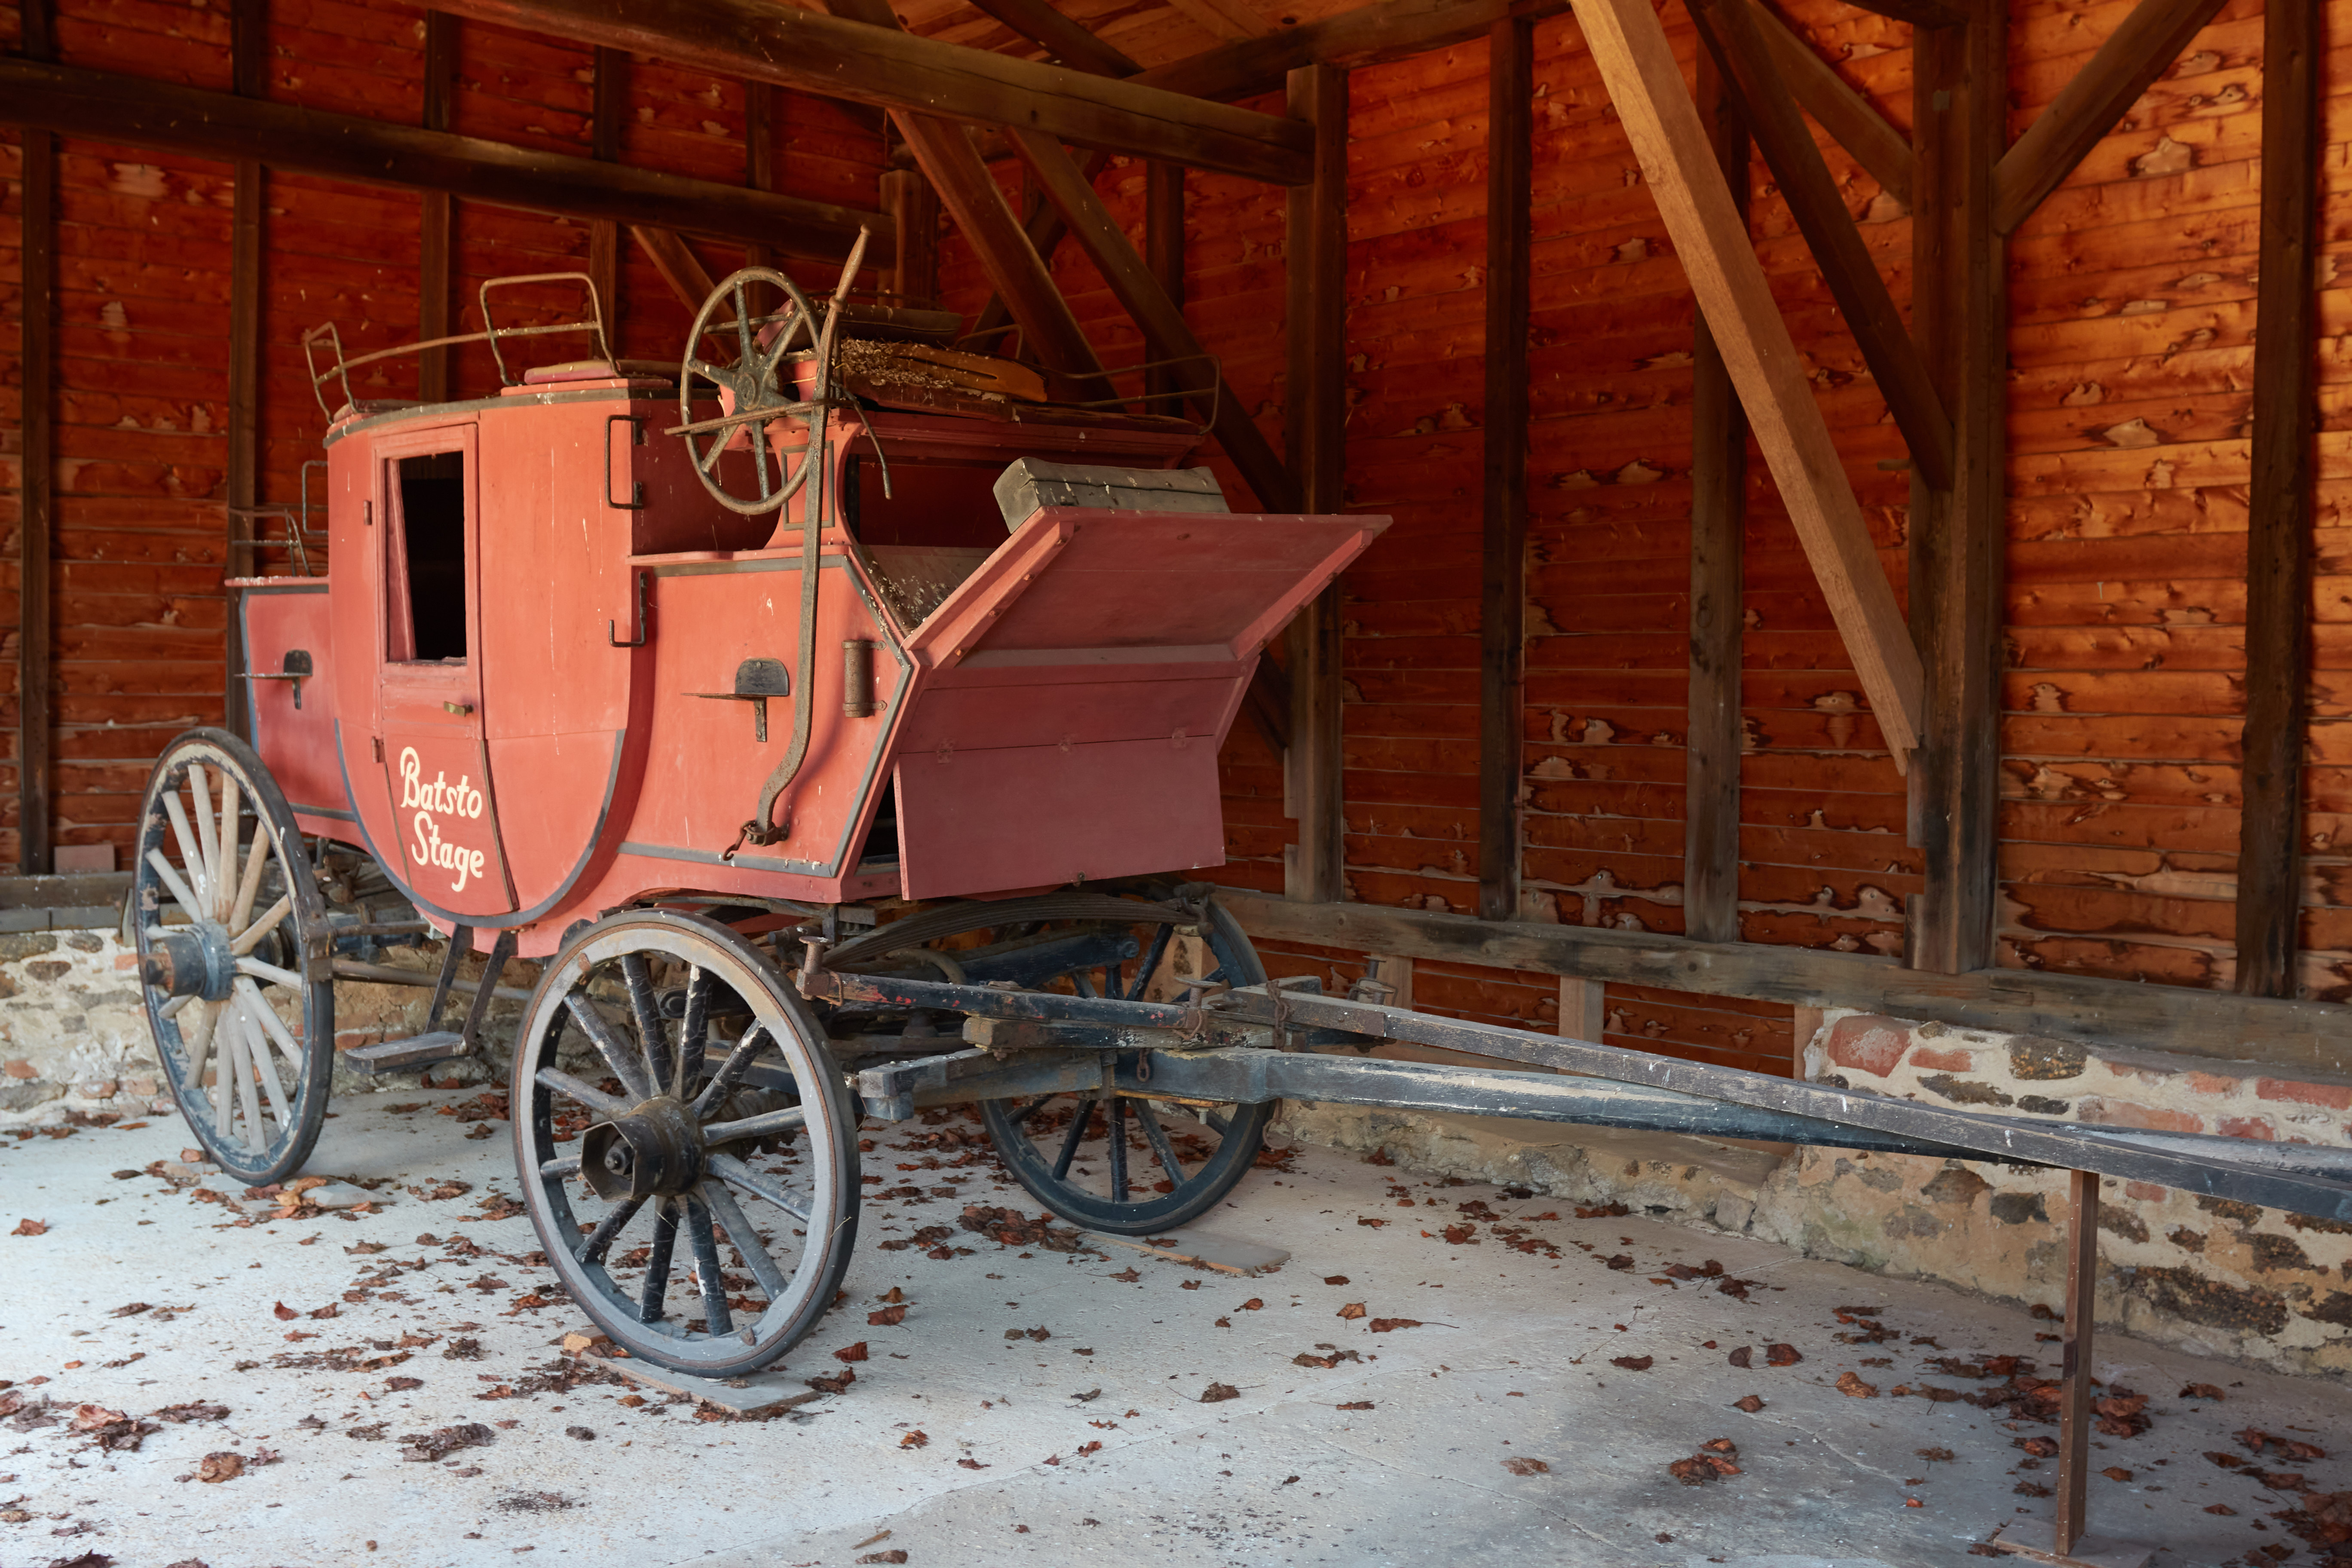 Stagecoach in barn.